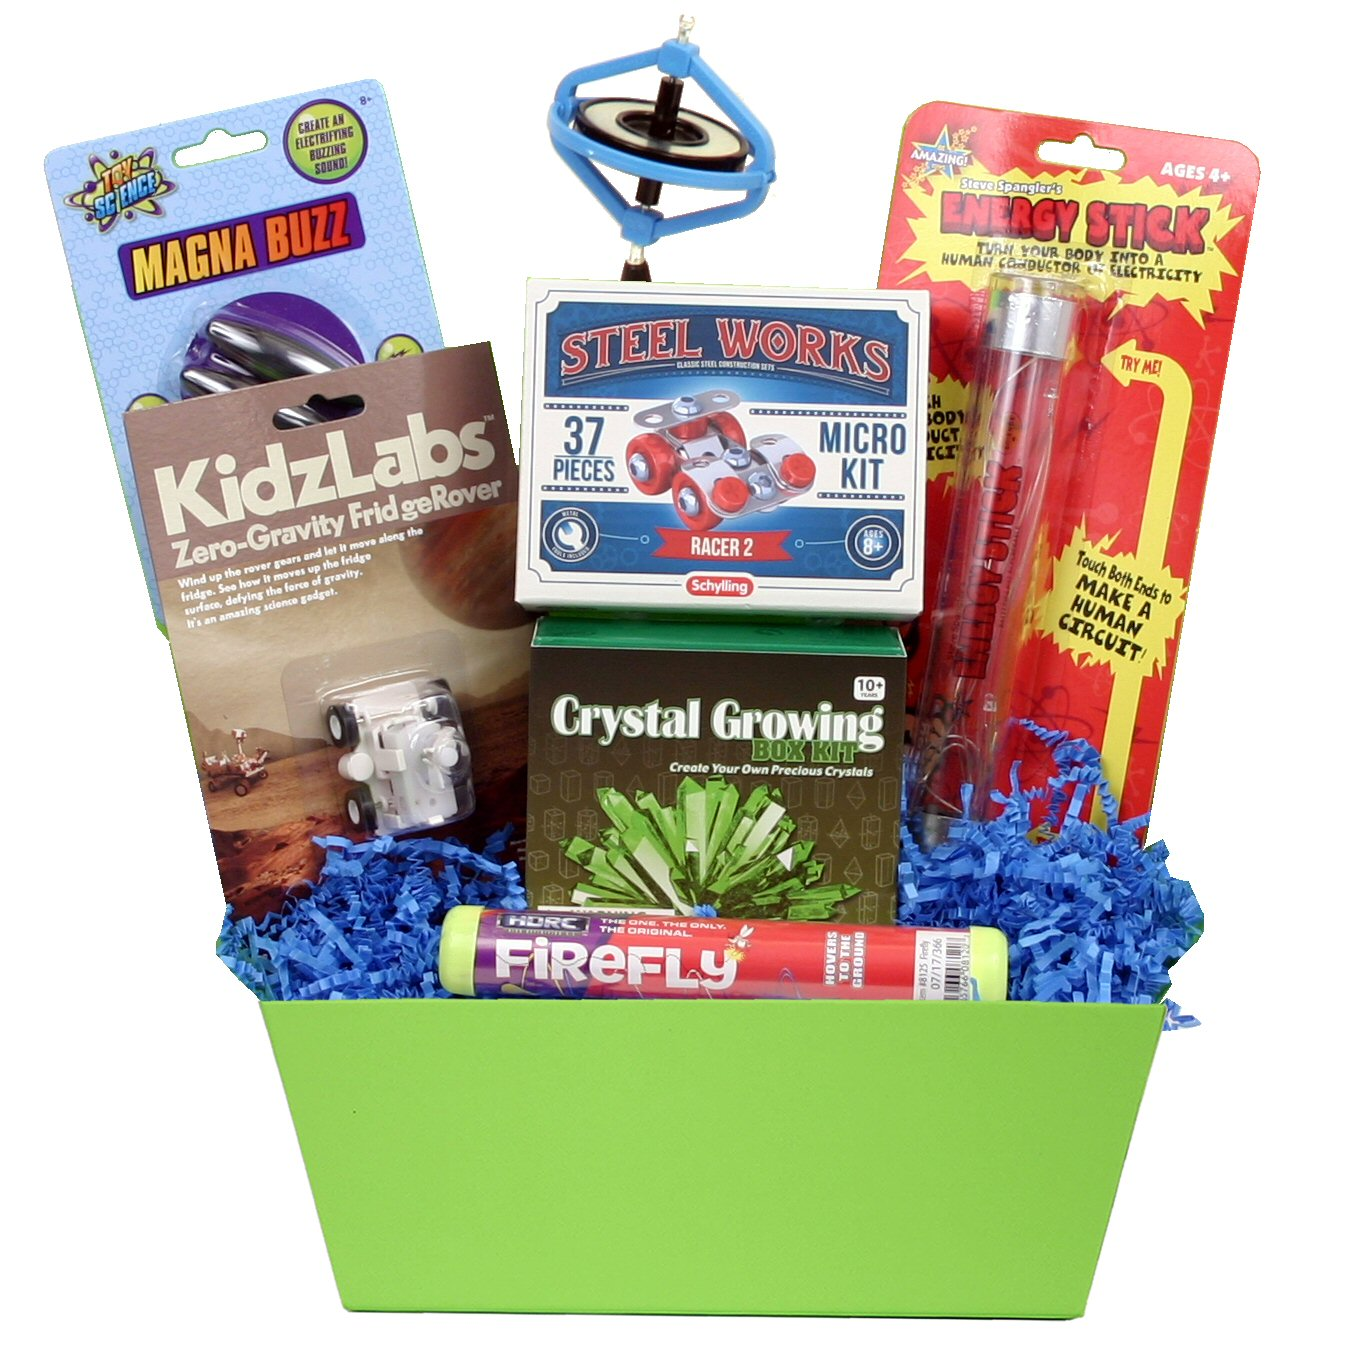 How Stuff Works Gift Basket - beyondbookmarks.com